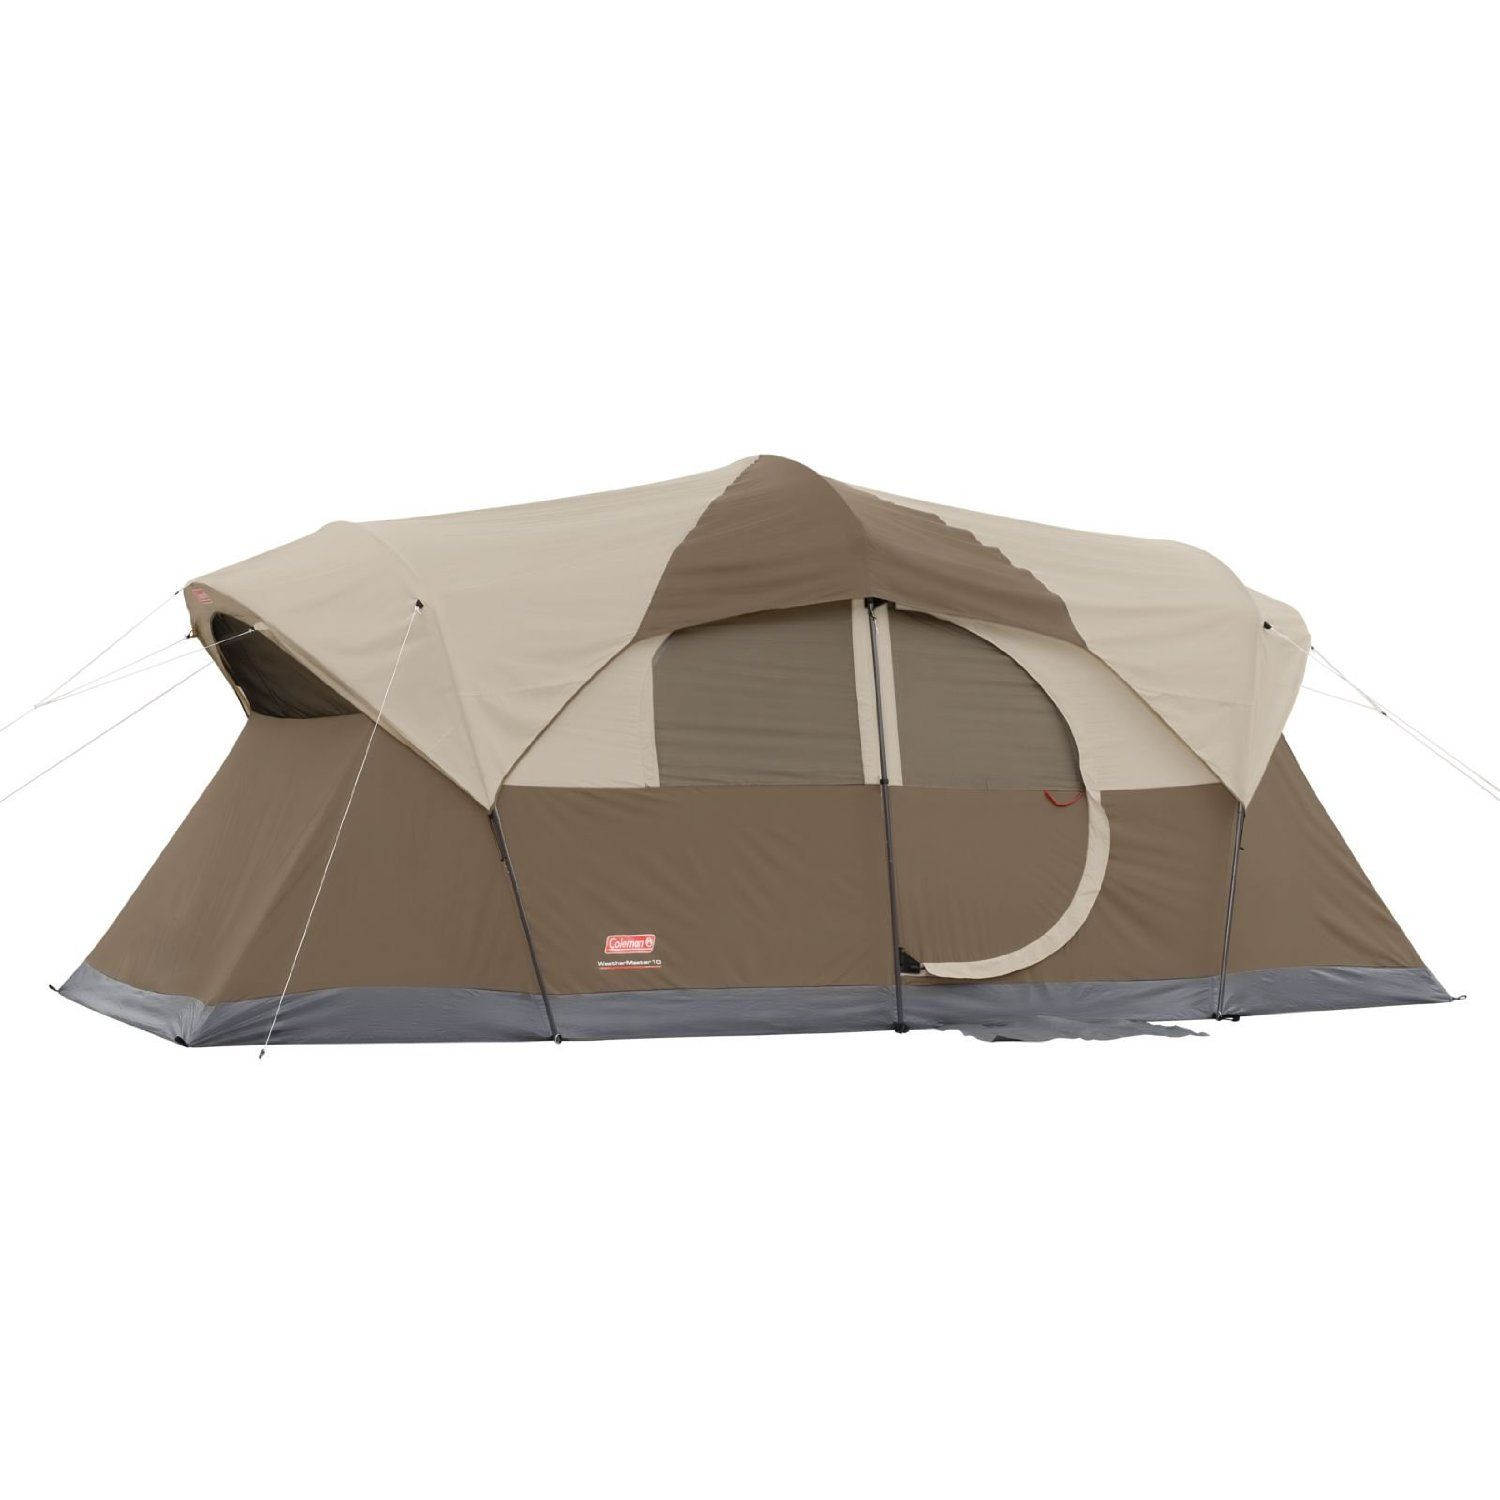 Check Out The Coleman Weathermaster 10 Person Hinged Door Tent Reviewed On Digimancave This Coleman 10 Pe 10 Person Tent Best Tents For Camping Coleman Tent